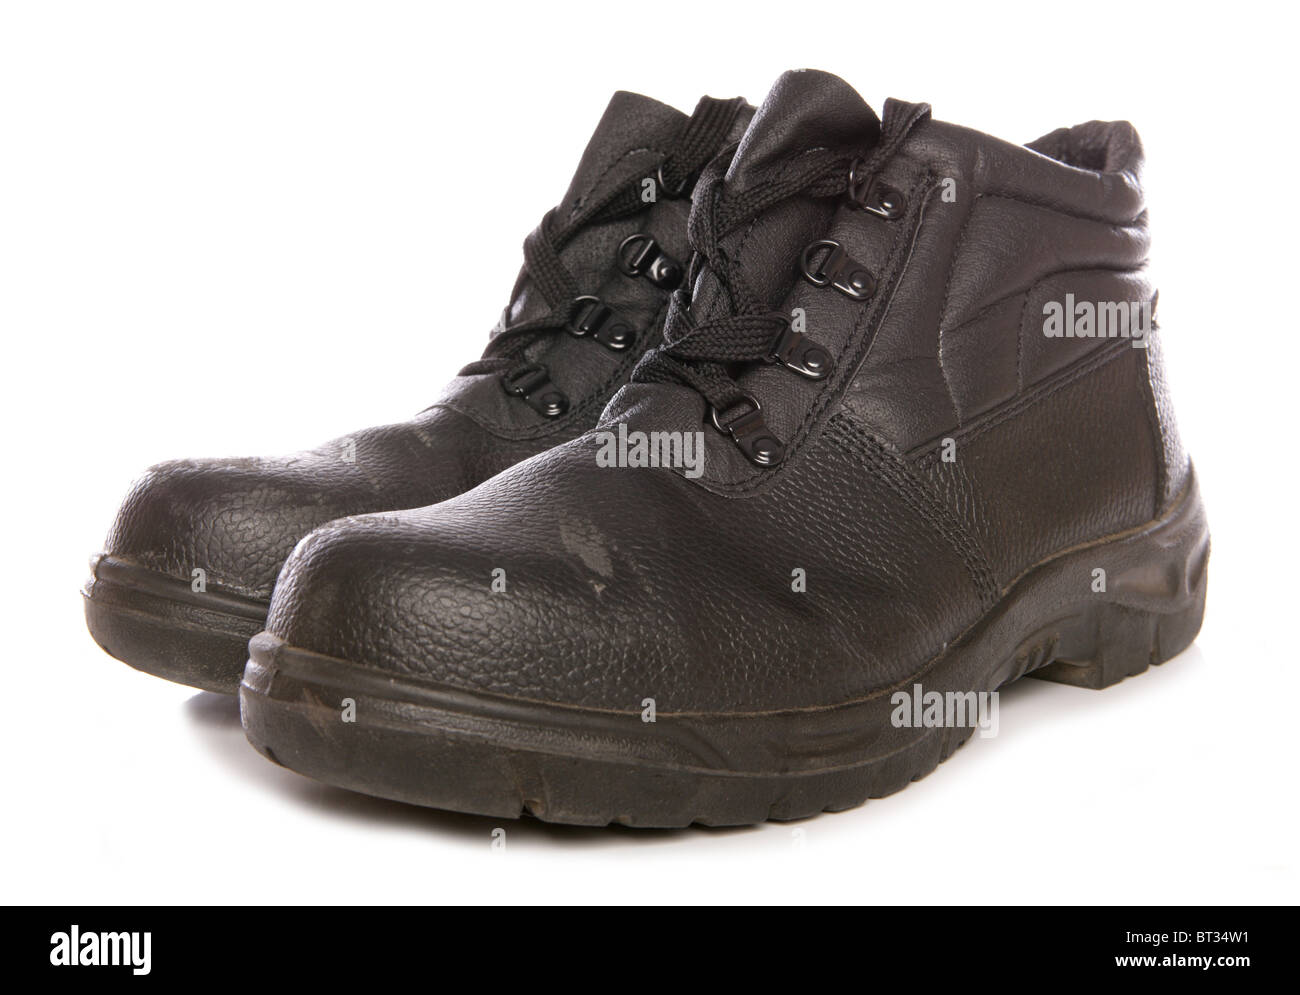 Steel Boots Stock Photos Images Alamy Cut Engineer Shoes Safety Iron Suede Leather Black Toecap Studio Cutout Image